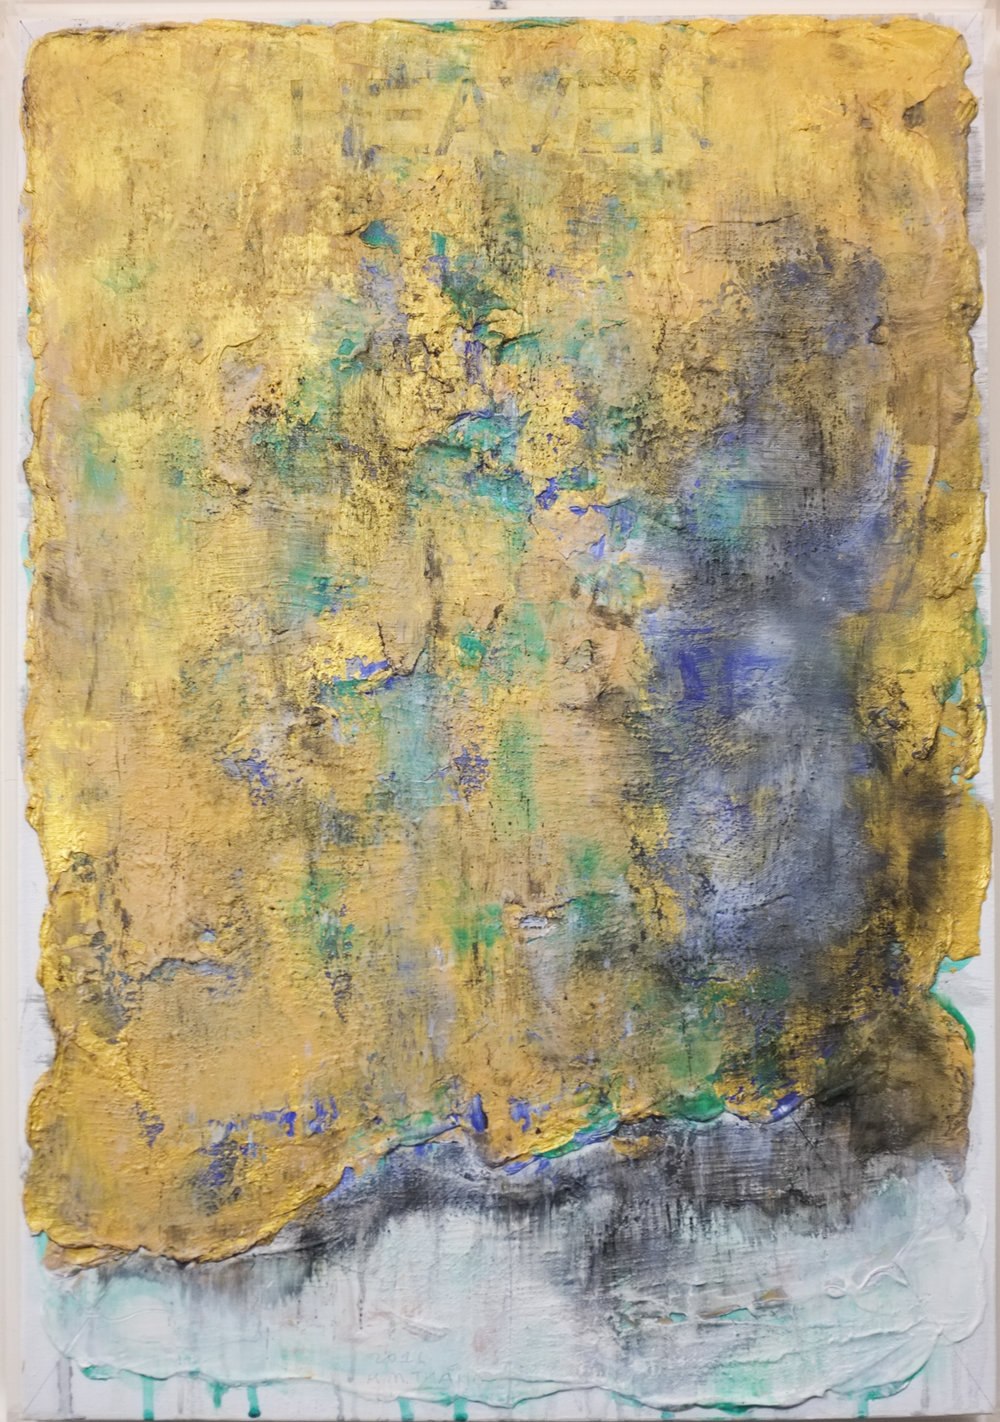 Midnoon #3 , 2016, Oil, Acrylic, Acrylic Medium and Charcoal on Canvas, 69.5 x 48 cm